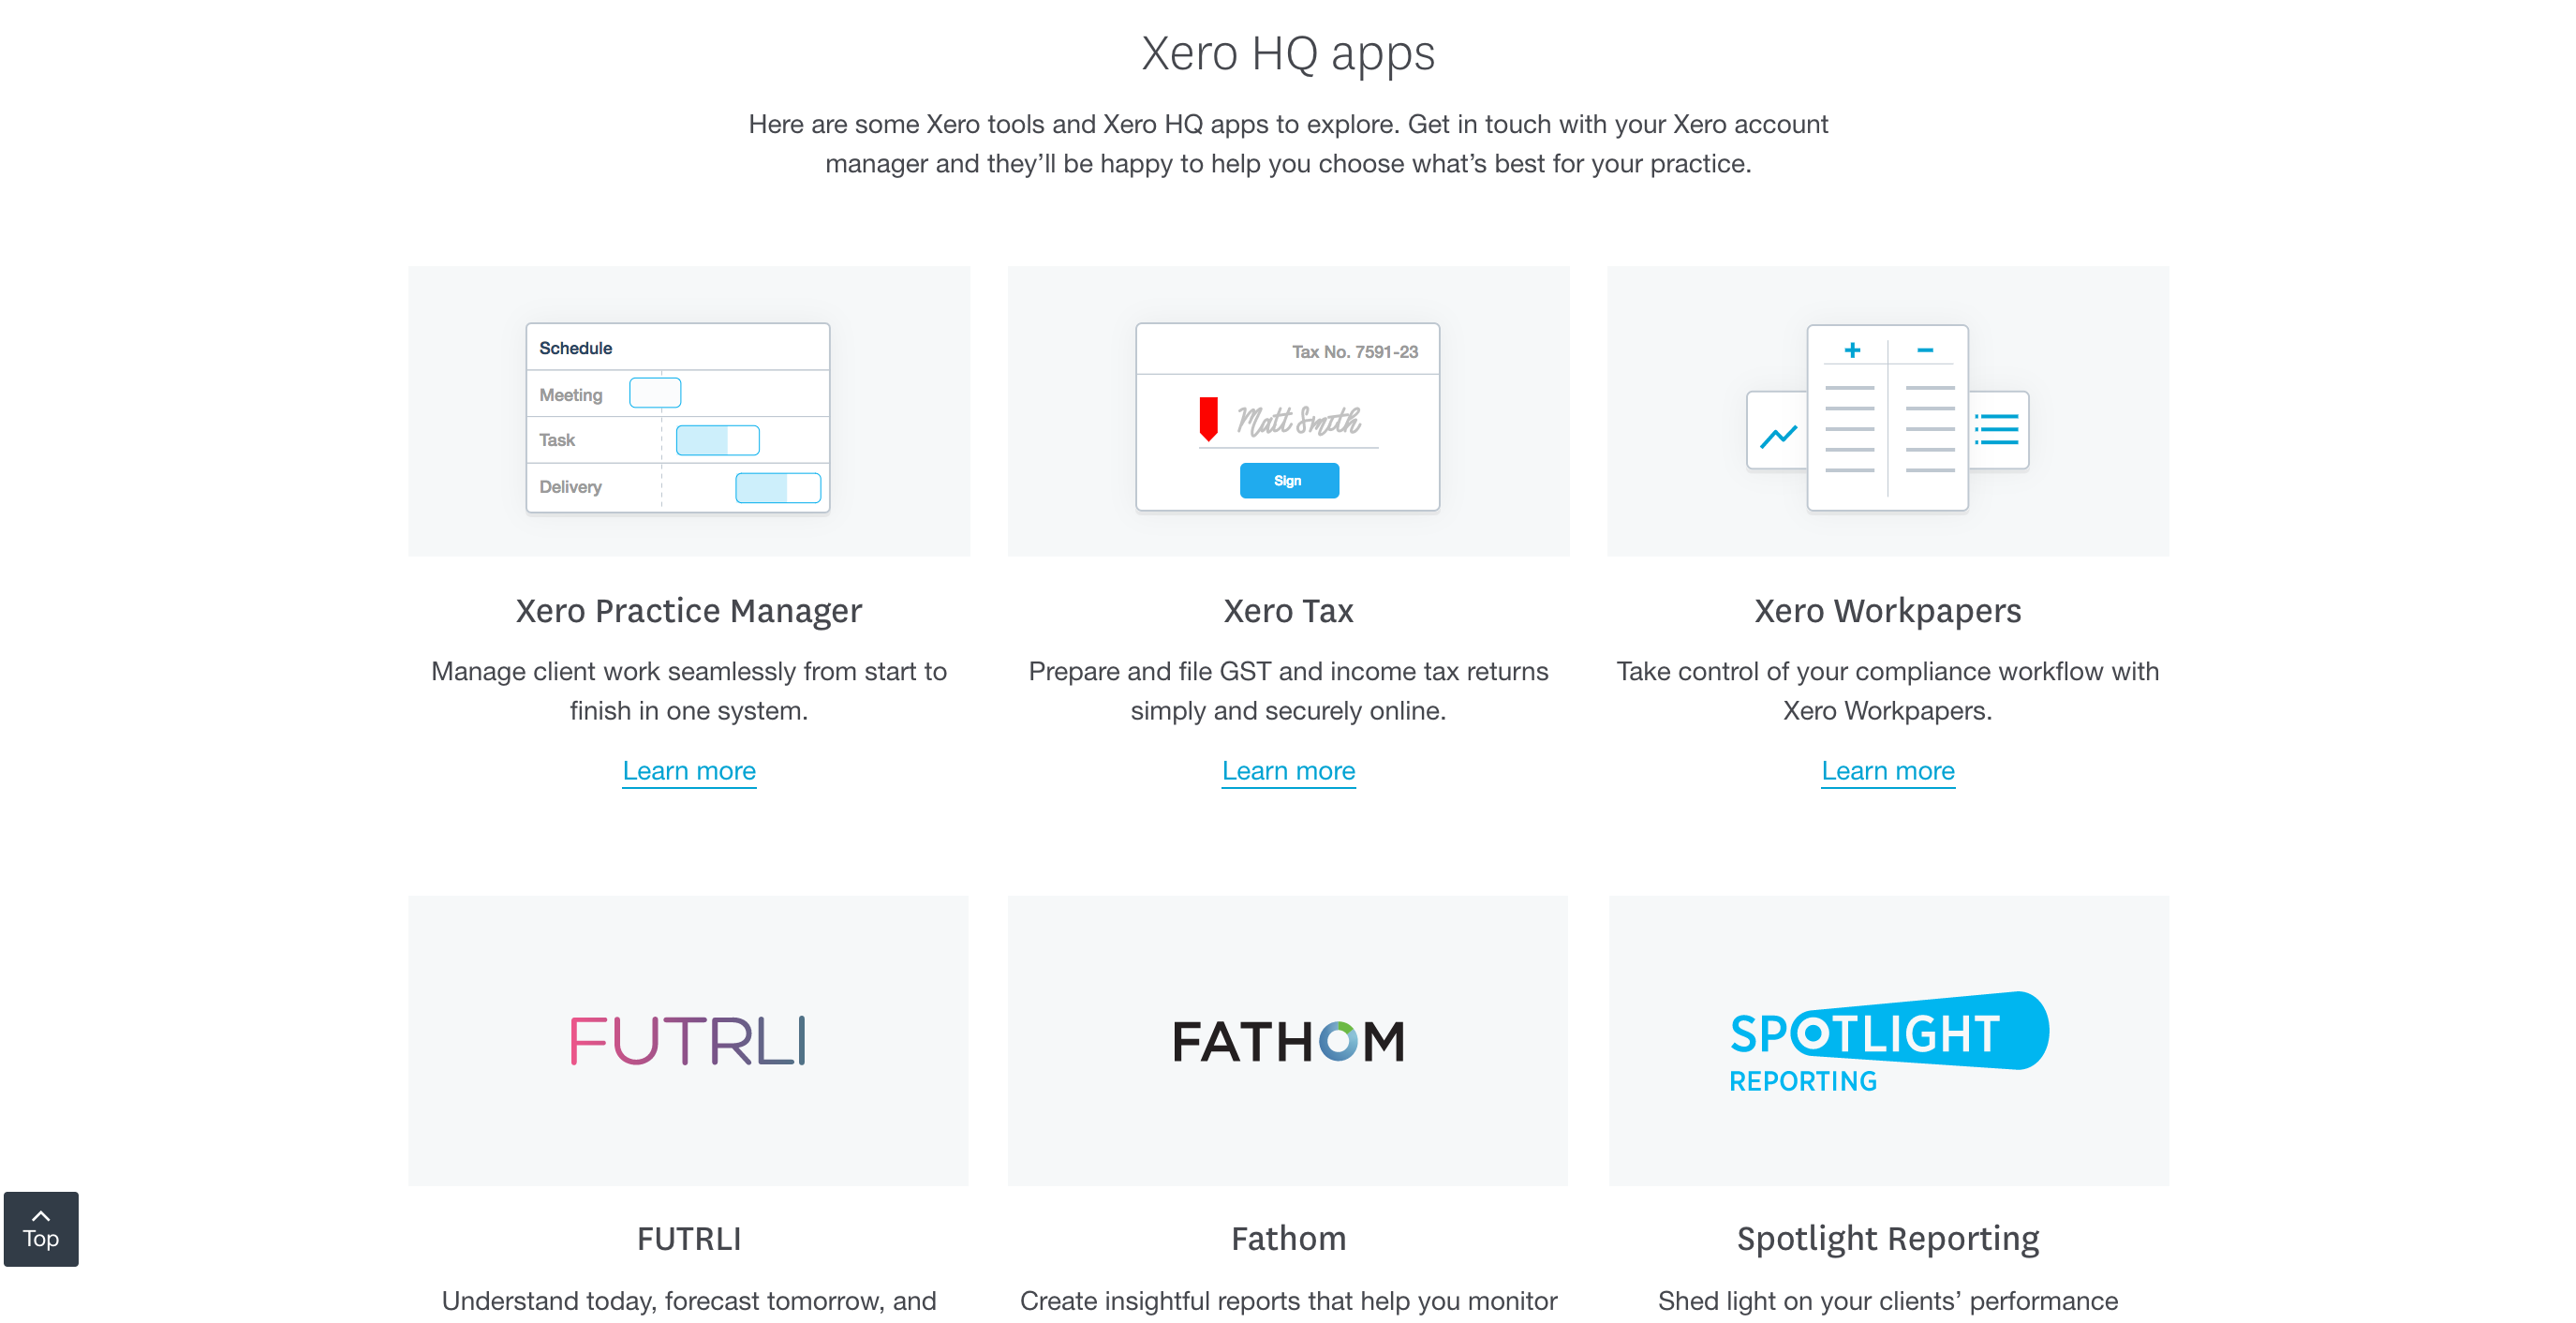 Xero HQ apps